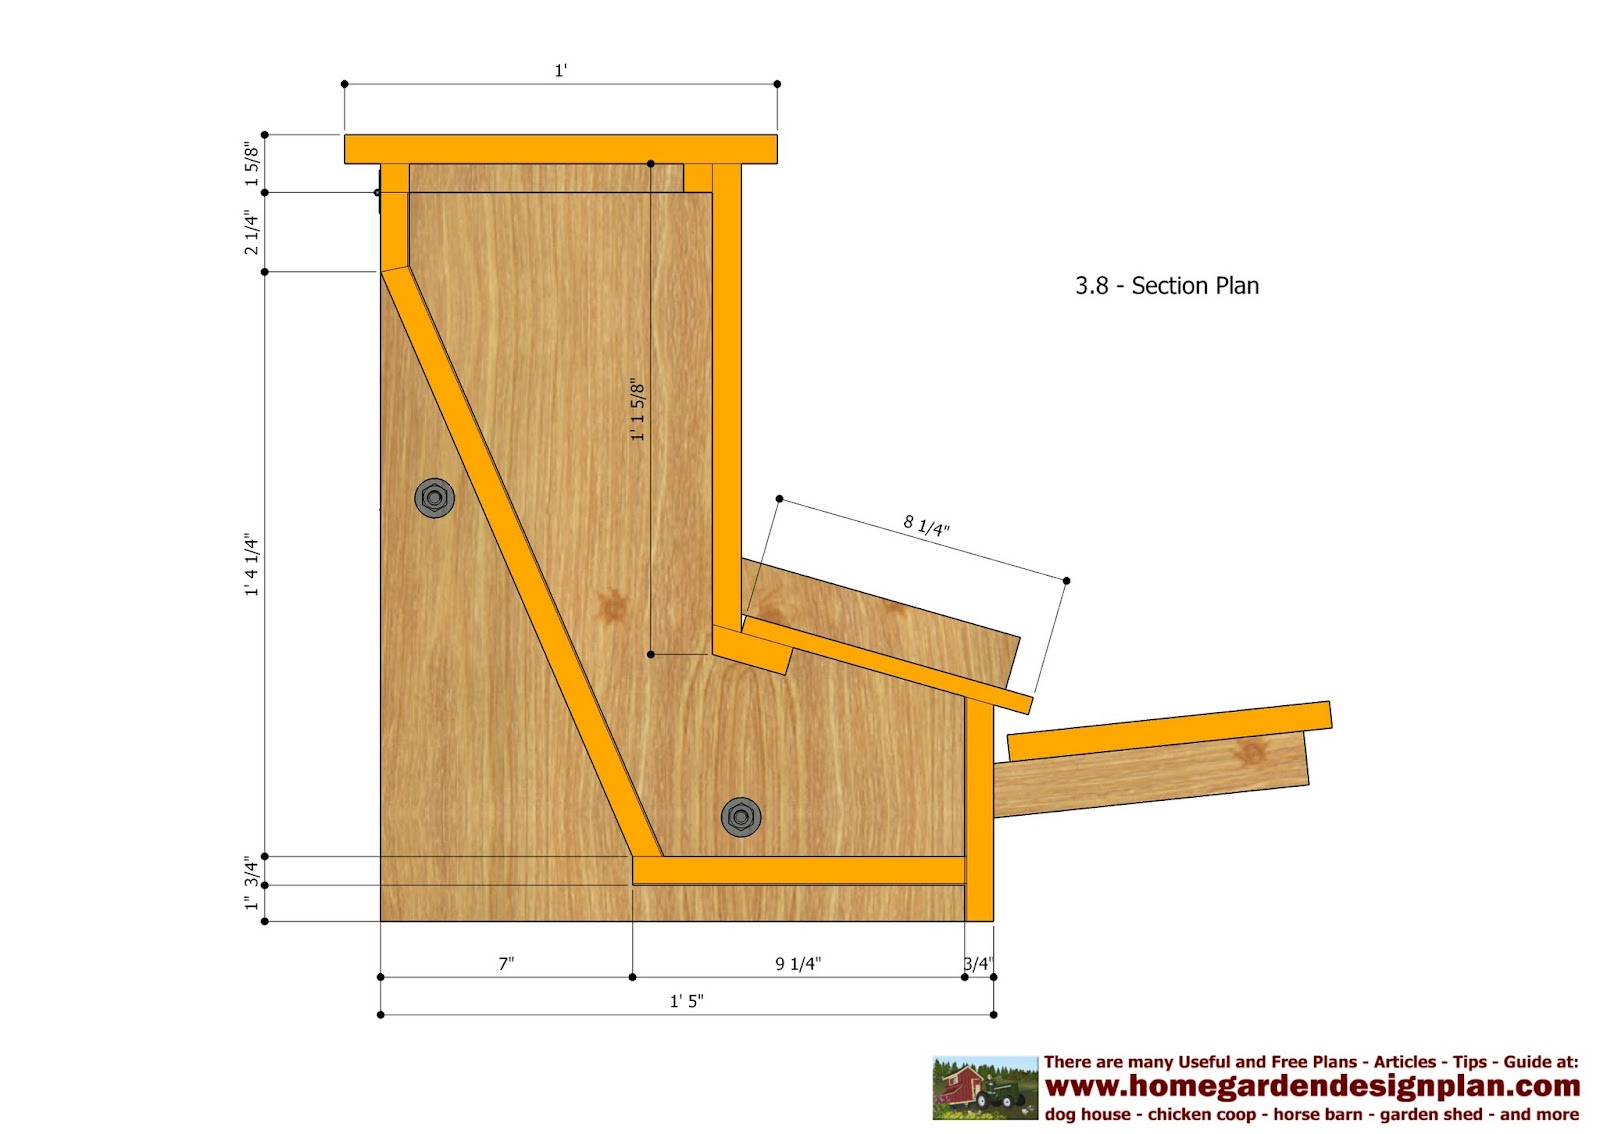 Denny yam free plans for chicken tractor coop for Free chicken plans